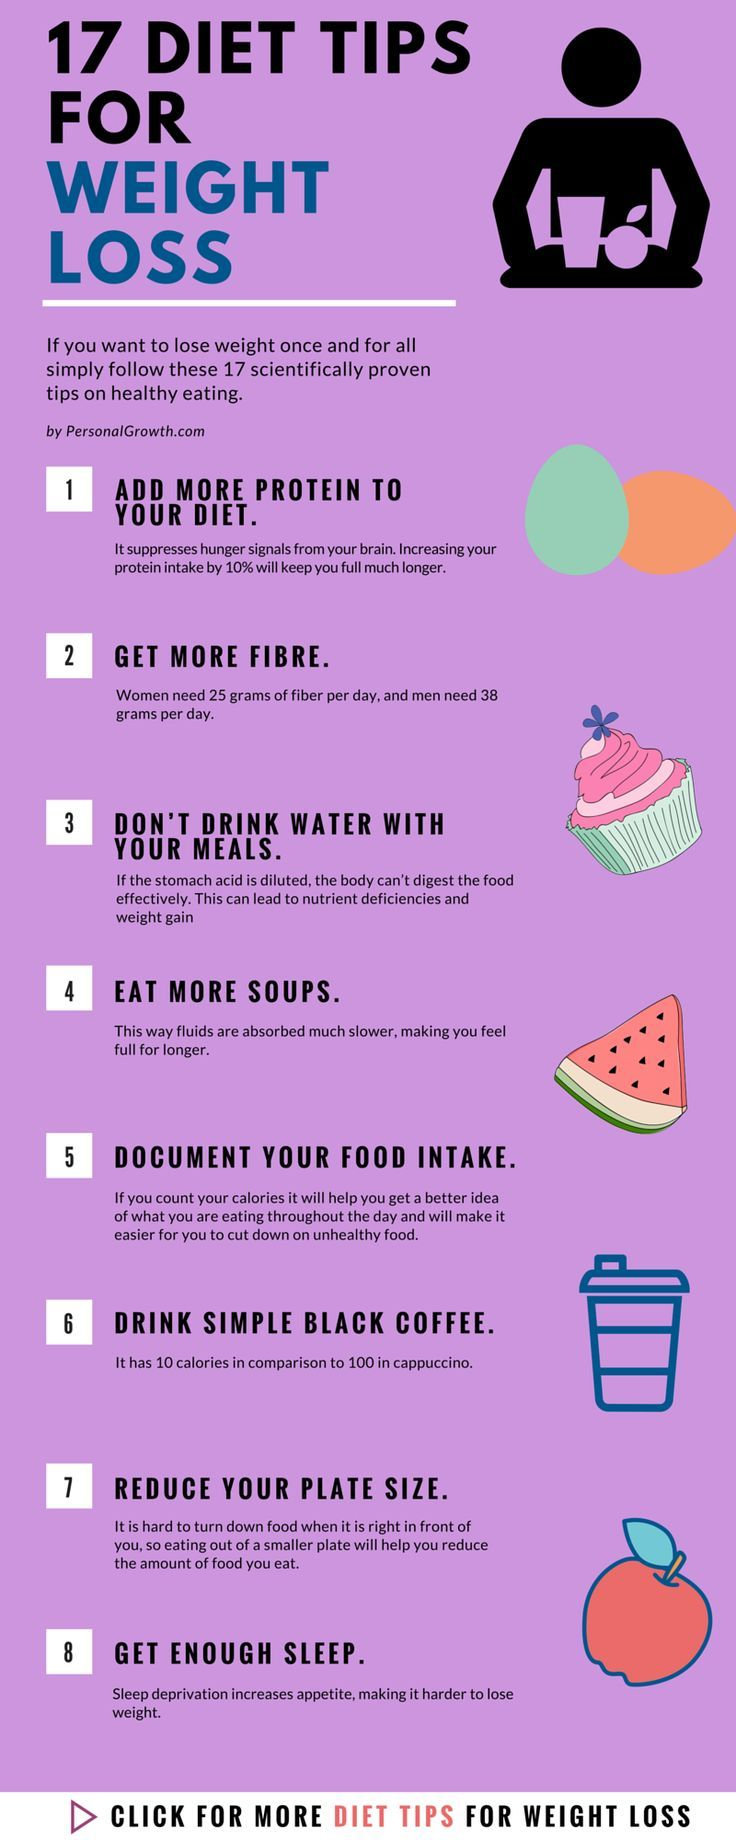 Top tips for healthy ageing